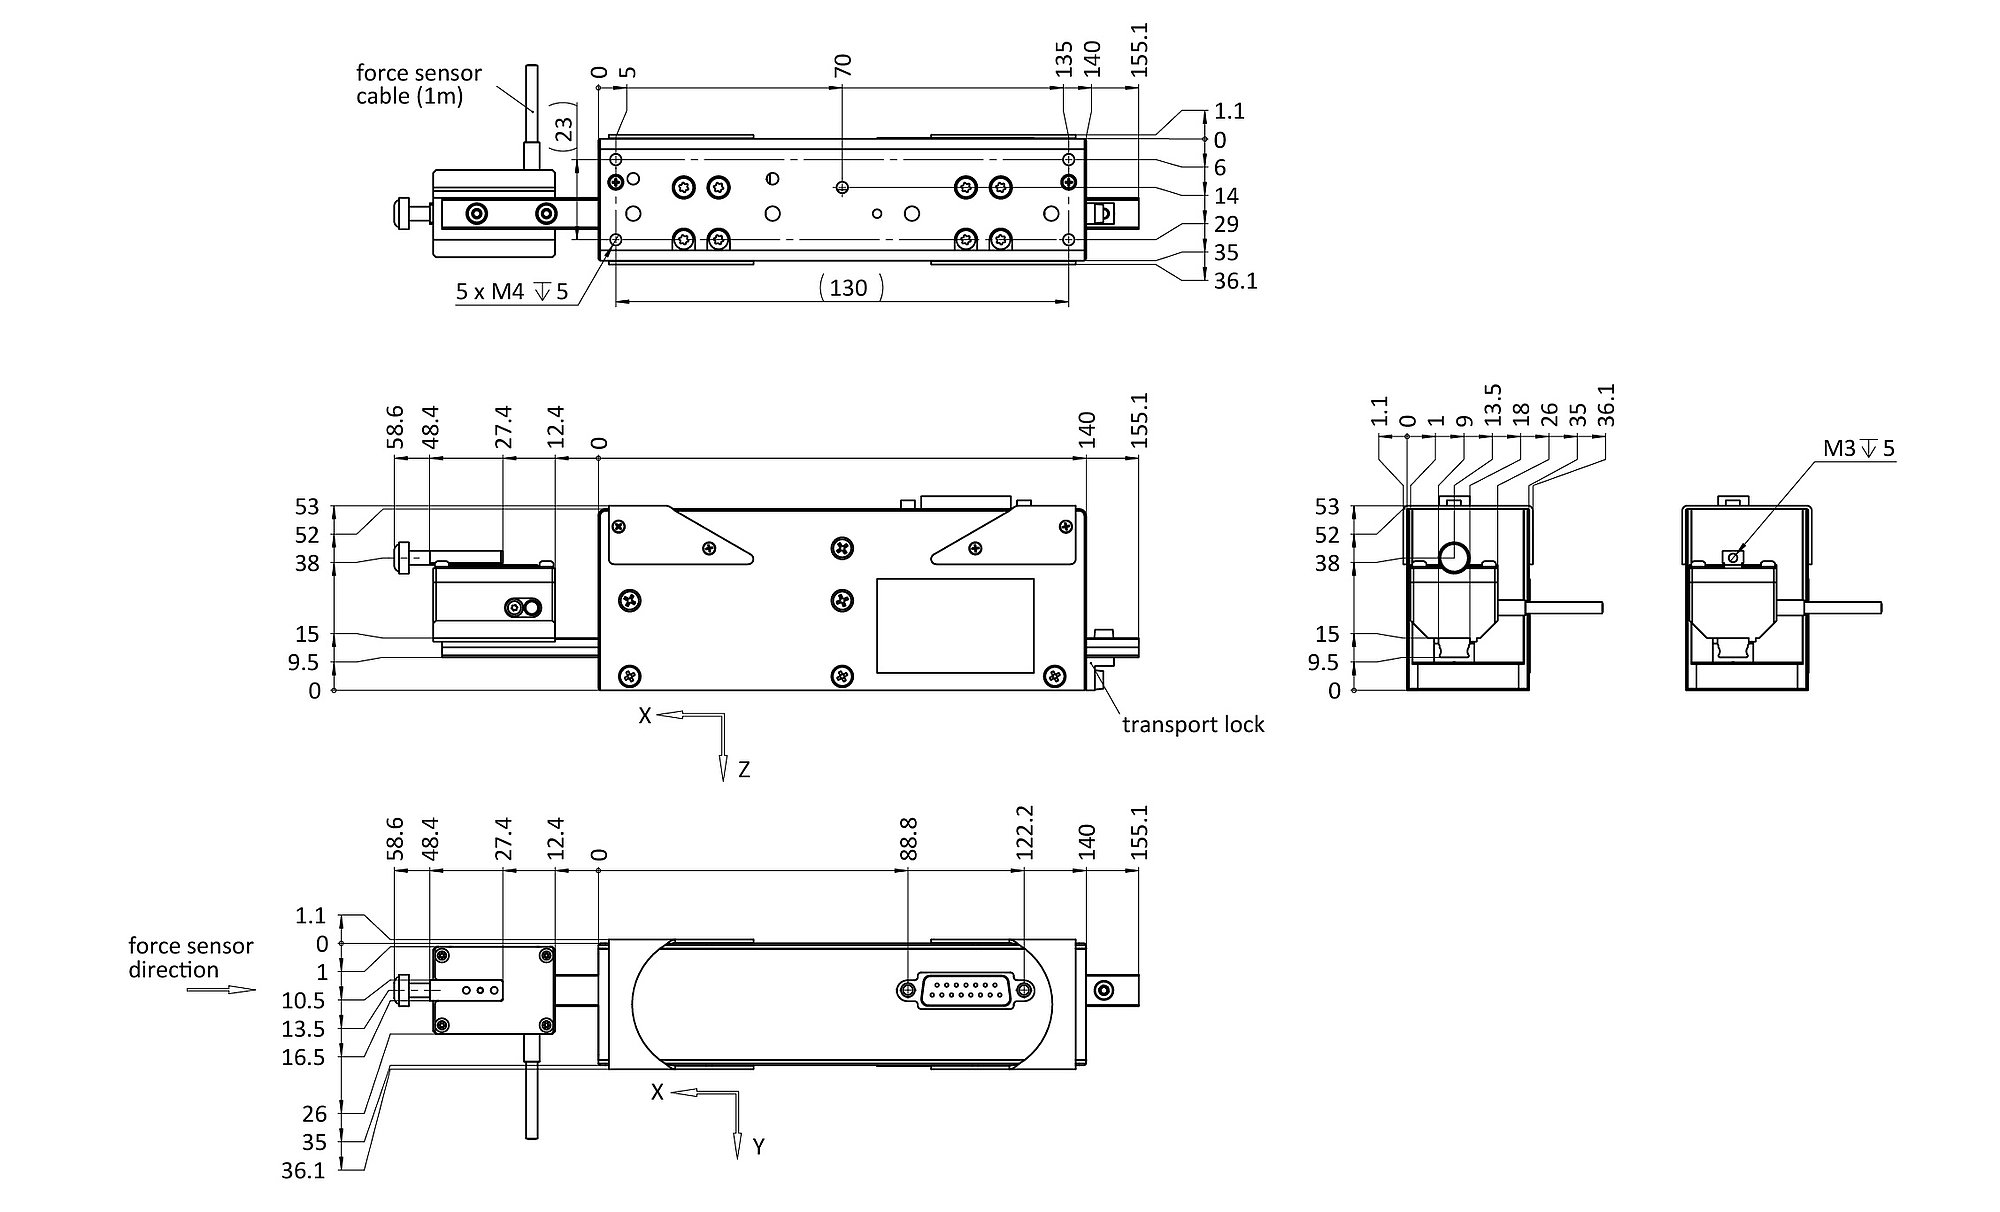 V-273 PIMag® Voice Coil Linear Actuator on fan limit control wiring diagram, linear actuator switch for, valve actuator wiring diagram, power door lock wiring diagram, linear actuator projects, door lock actuator wiring diagram, 5 wire relay wiring diagram, remote control wiring diagram, mercedes-benz door lock wiring diagram, linear actuator wiring color code, 115 volt wiring diagram, electric linear actuator wiring diagram, linear actuator wiring for dual switches, linear actuator toggle switch,